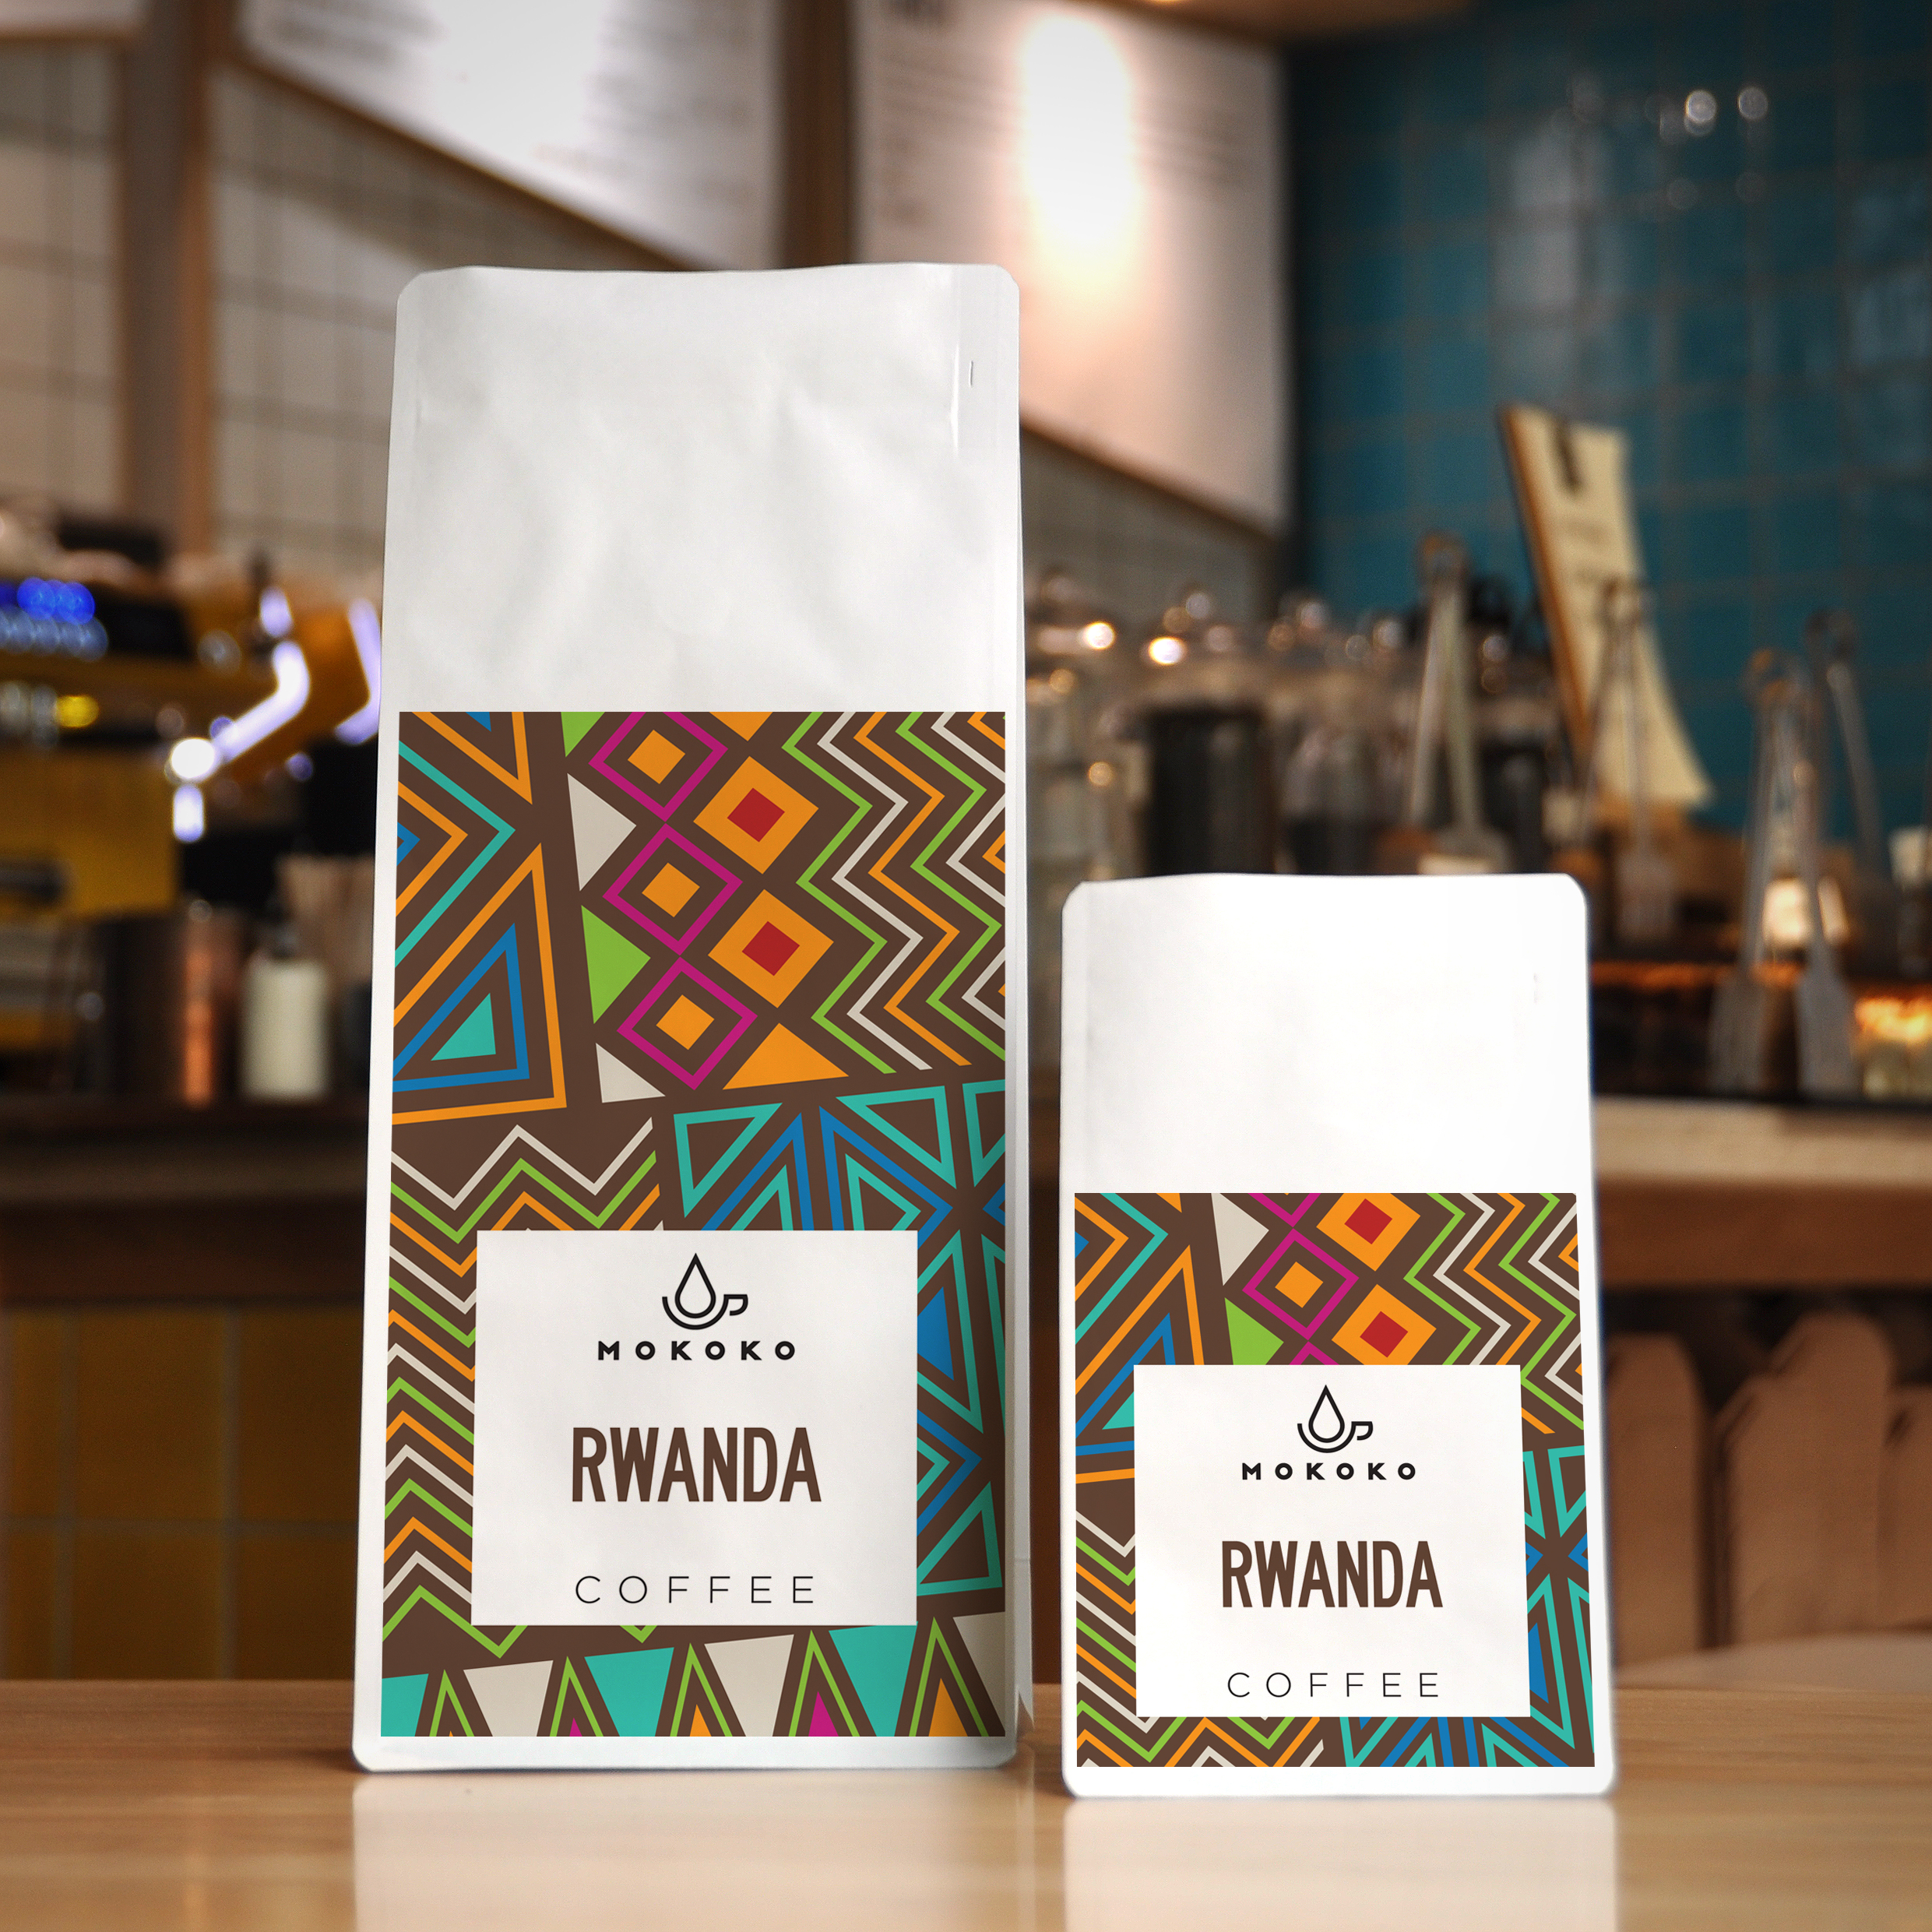 Coffee Packaging Design for Independent Coffee Shop and Bakery based in the UK / World Brand & Packaging Design Society